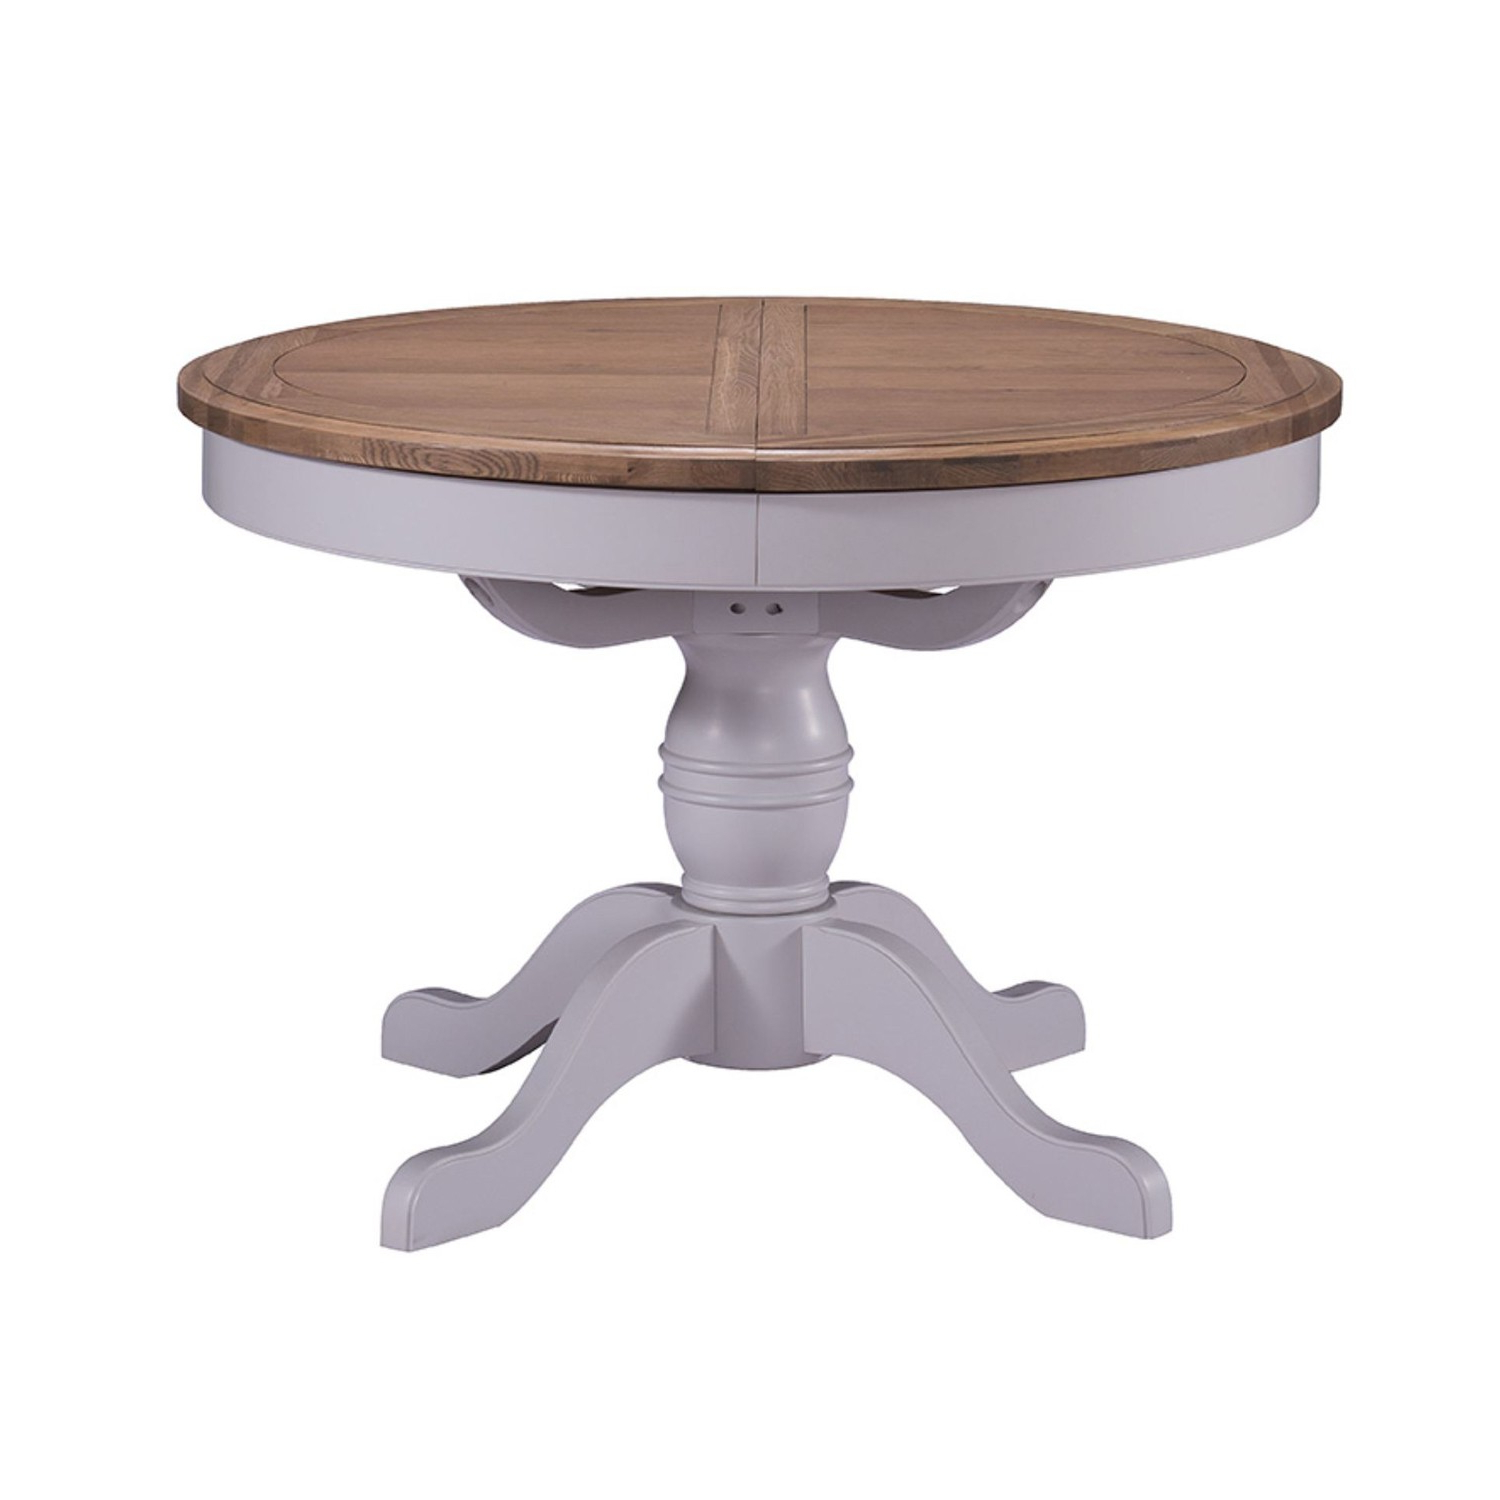 Favorite Dining Tables Stunning Round Extendable Dining Table 60 Regarding Hewn Oak Lorraine Extending Dining Tables (View 11 of 25)